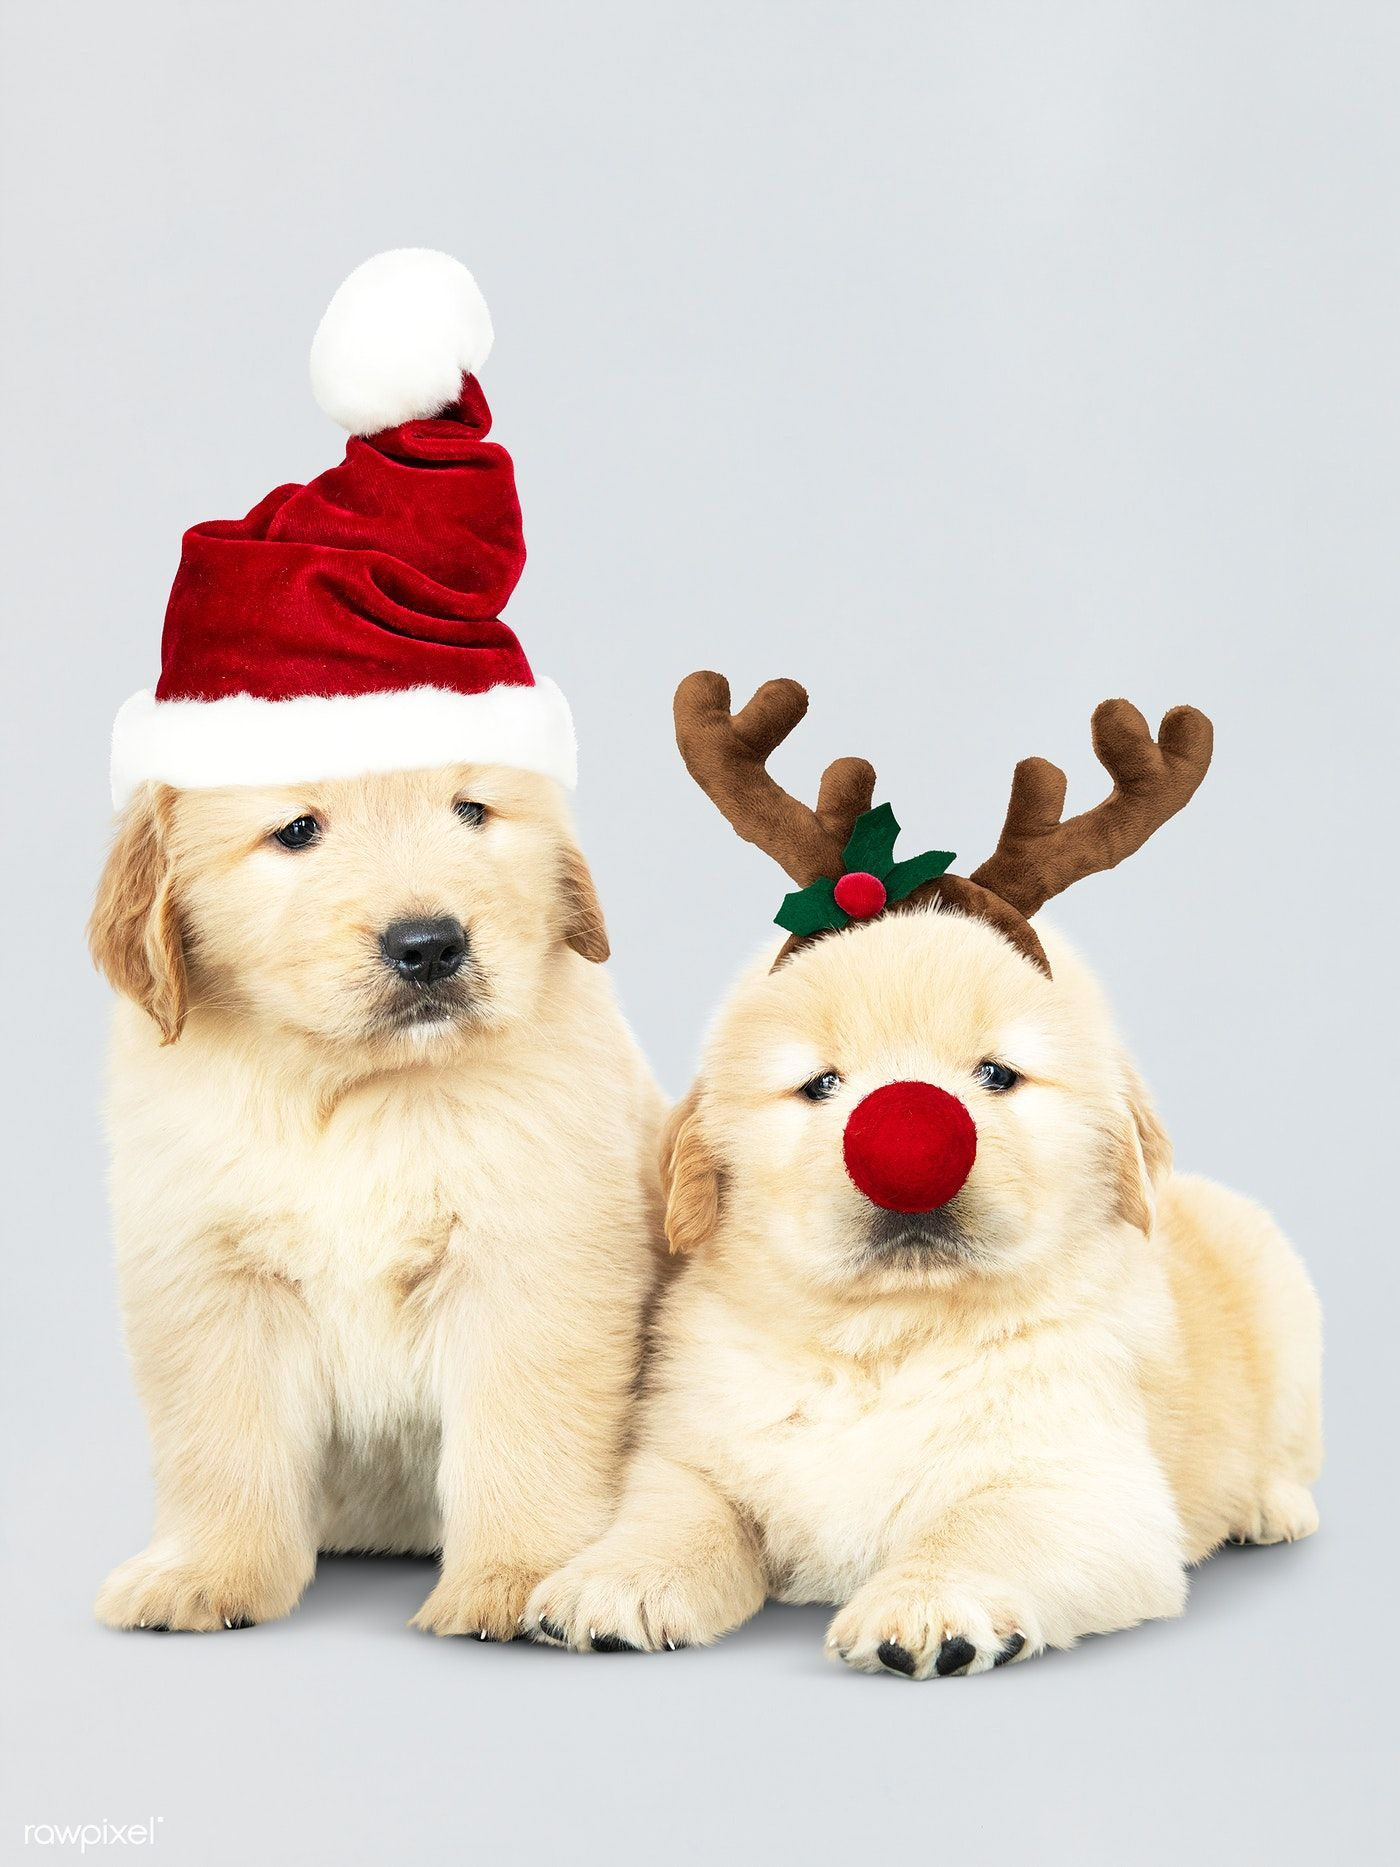 Download Premium Psd Of Two Golden Retriever Puppies Wearing A